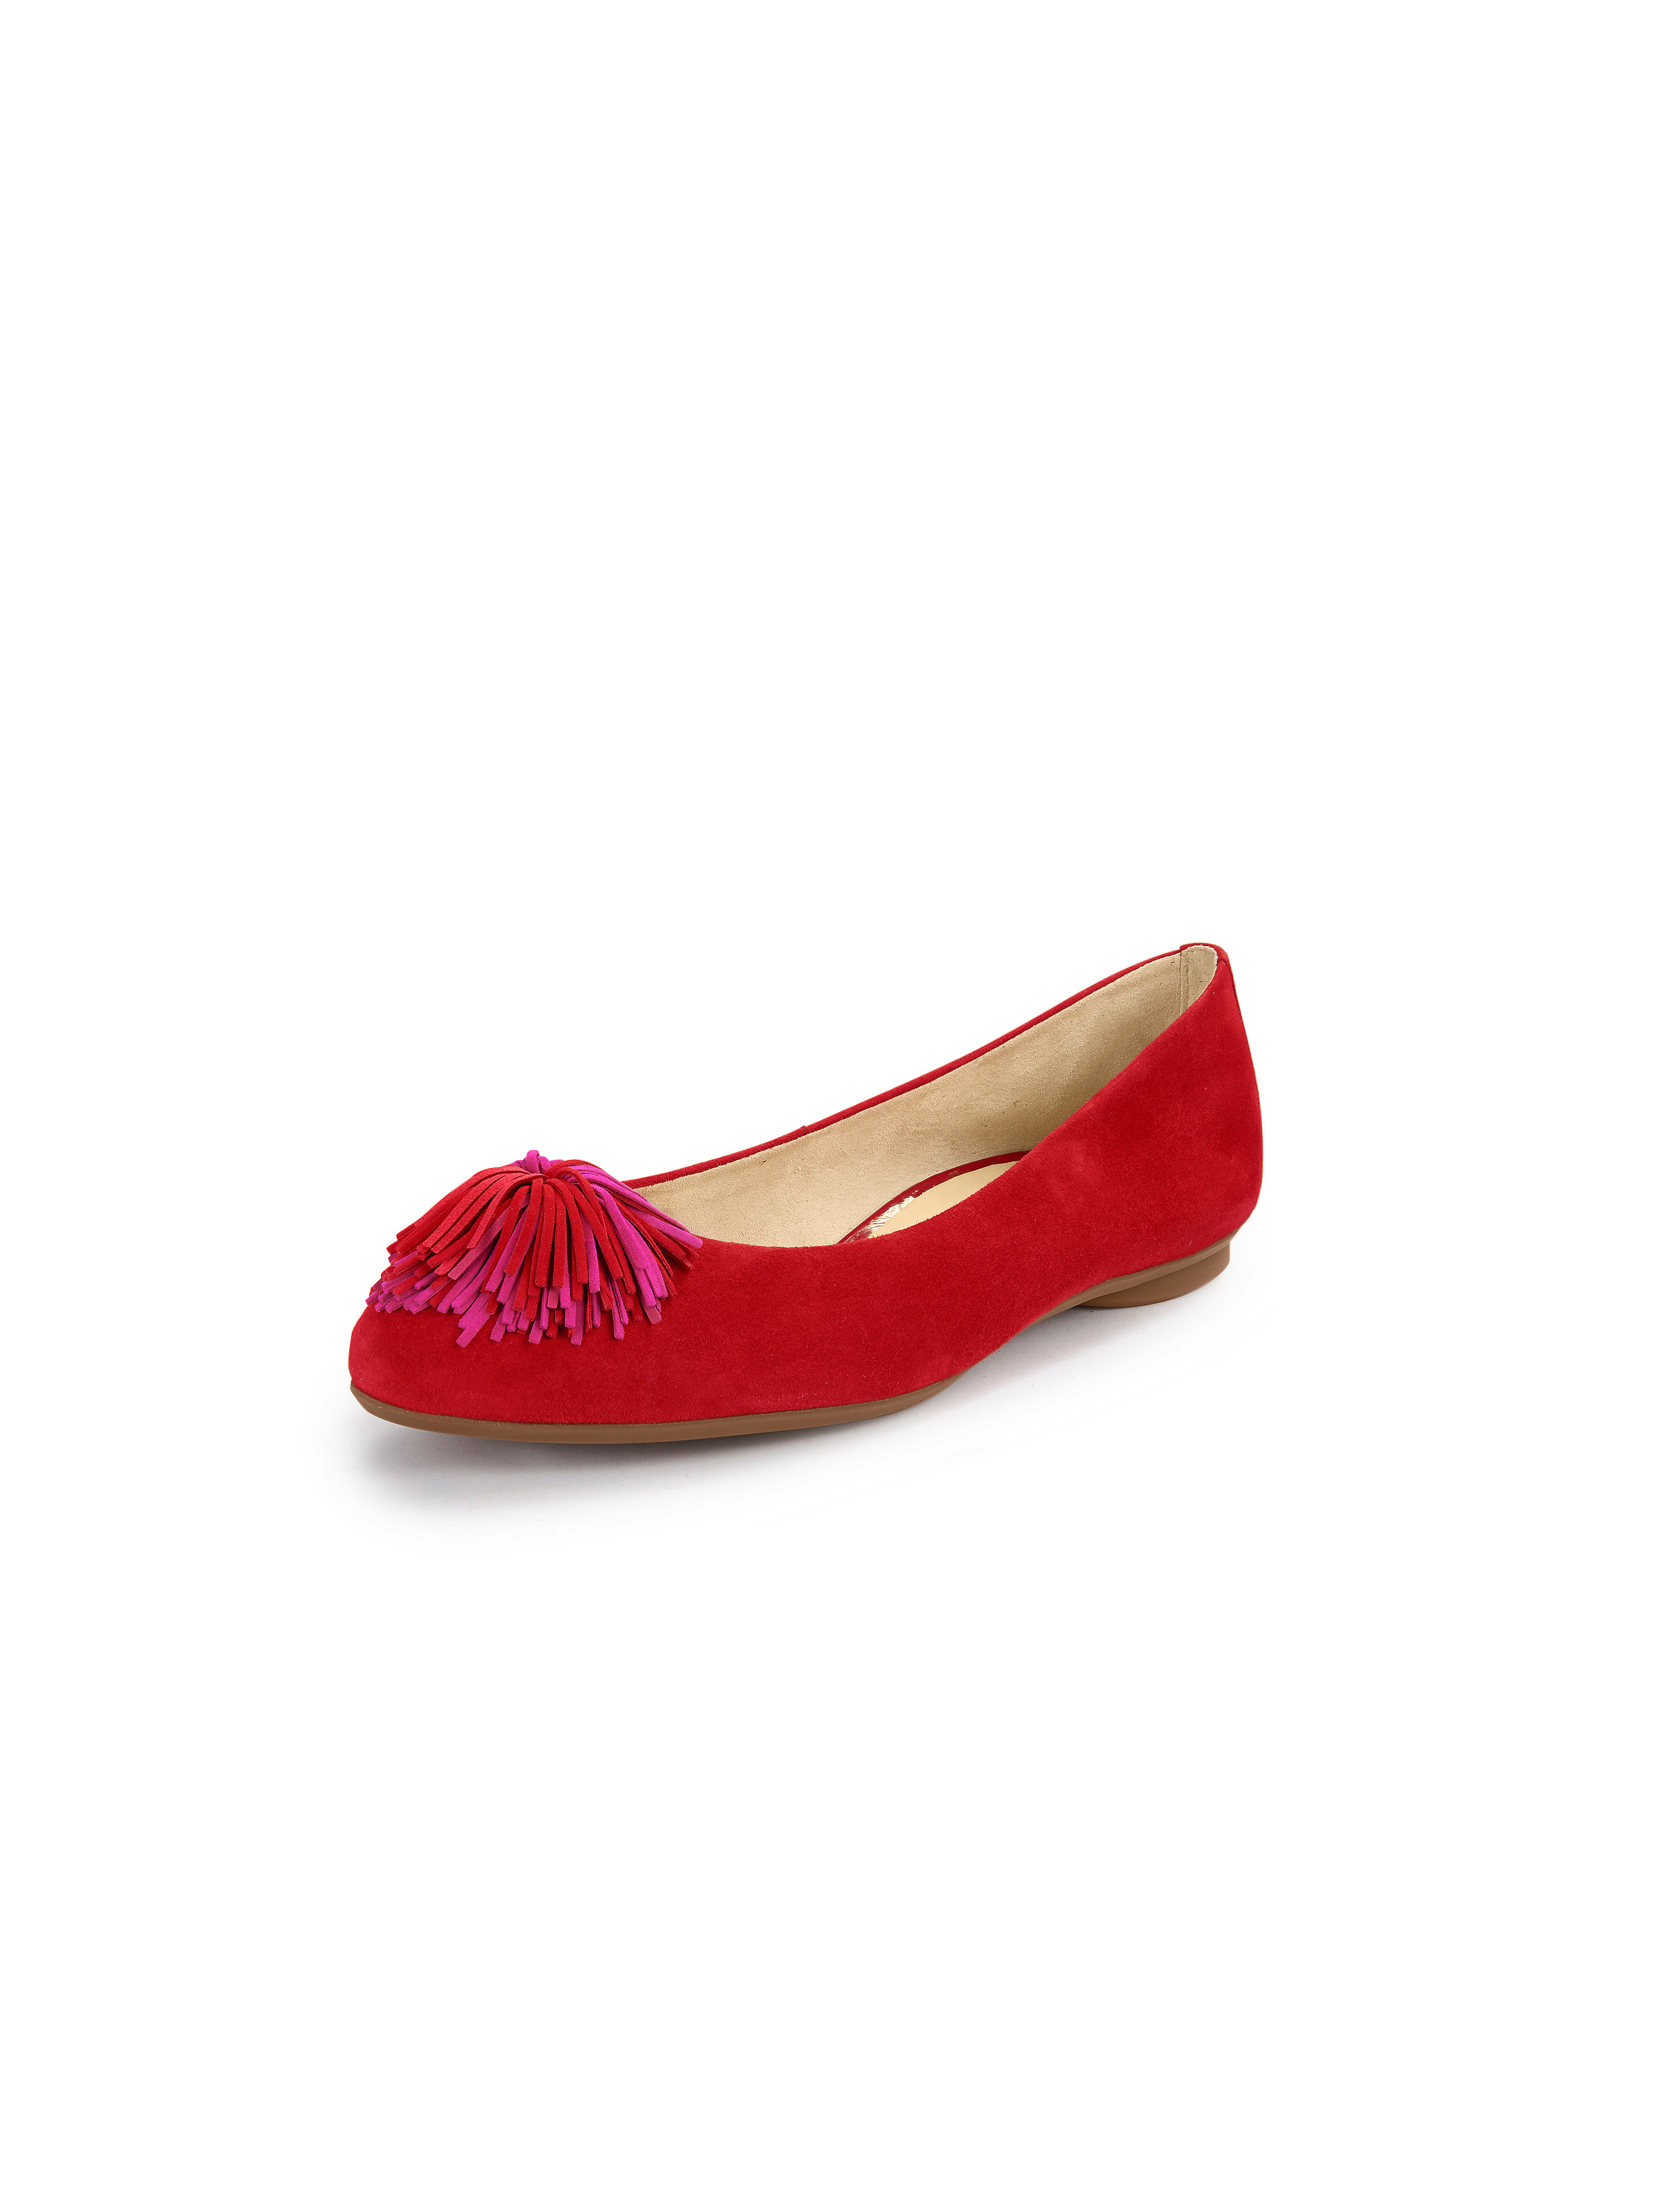 Les ballerines  Paul Green rouge taille 37